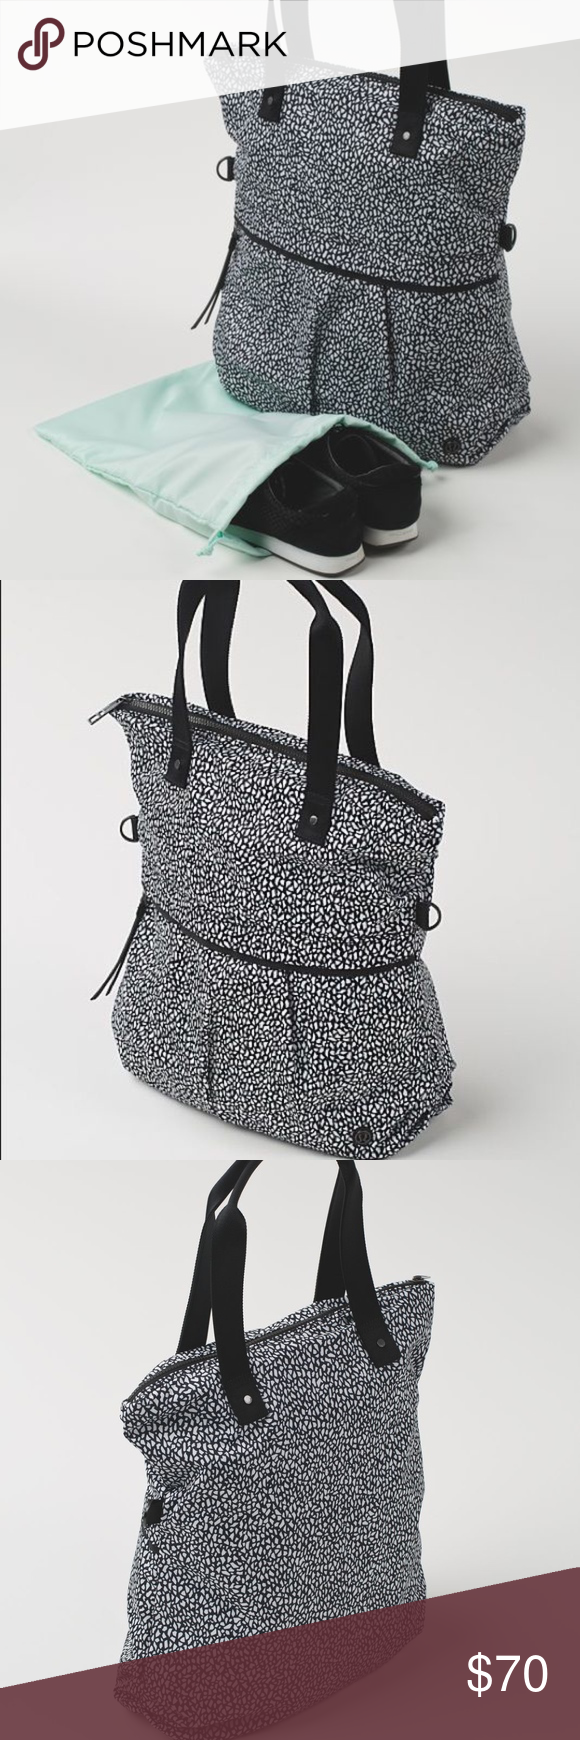 56d92a1627 Lululemon Twice as Nice Tote Good weekend bag or gym bag and black and  white print easily goes with existing closets. Mint interior and I do have  the ...